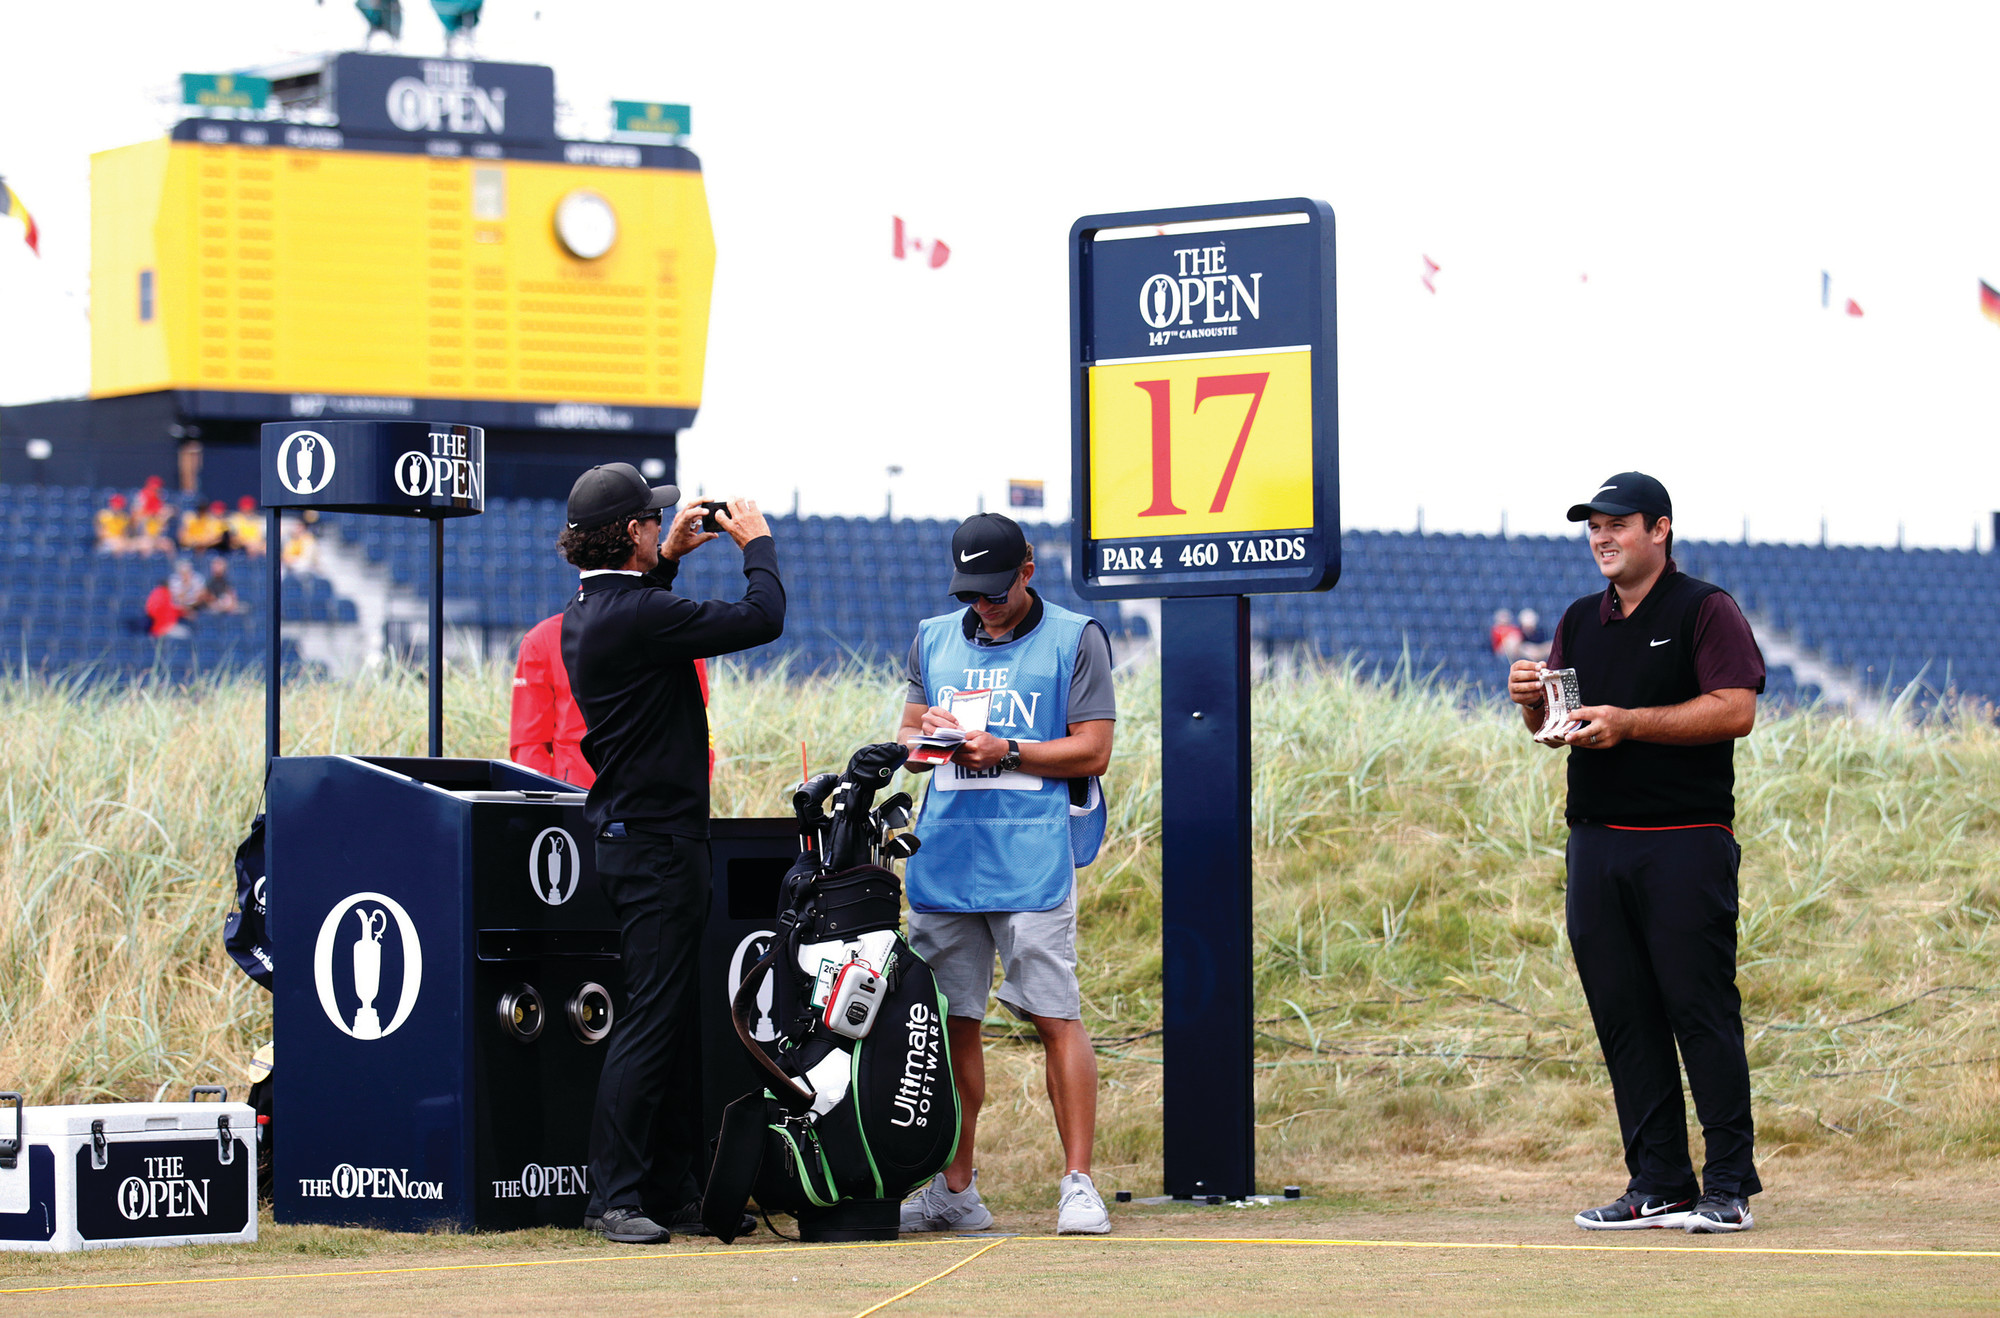 Masters champion Patrick Reed goes through a practice round for the 147th British Open on Tuesday in Carnoustie Scotland. The tournament begins on Thursday